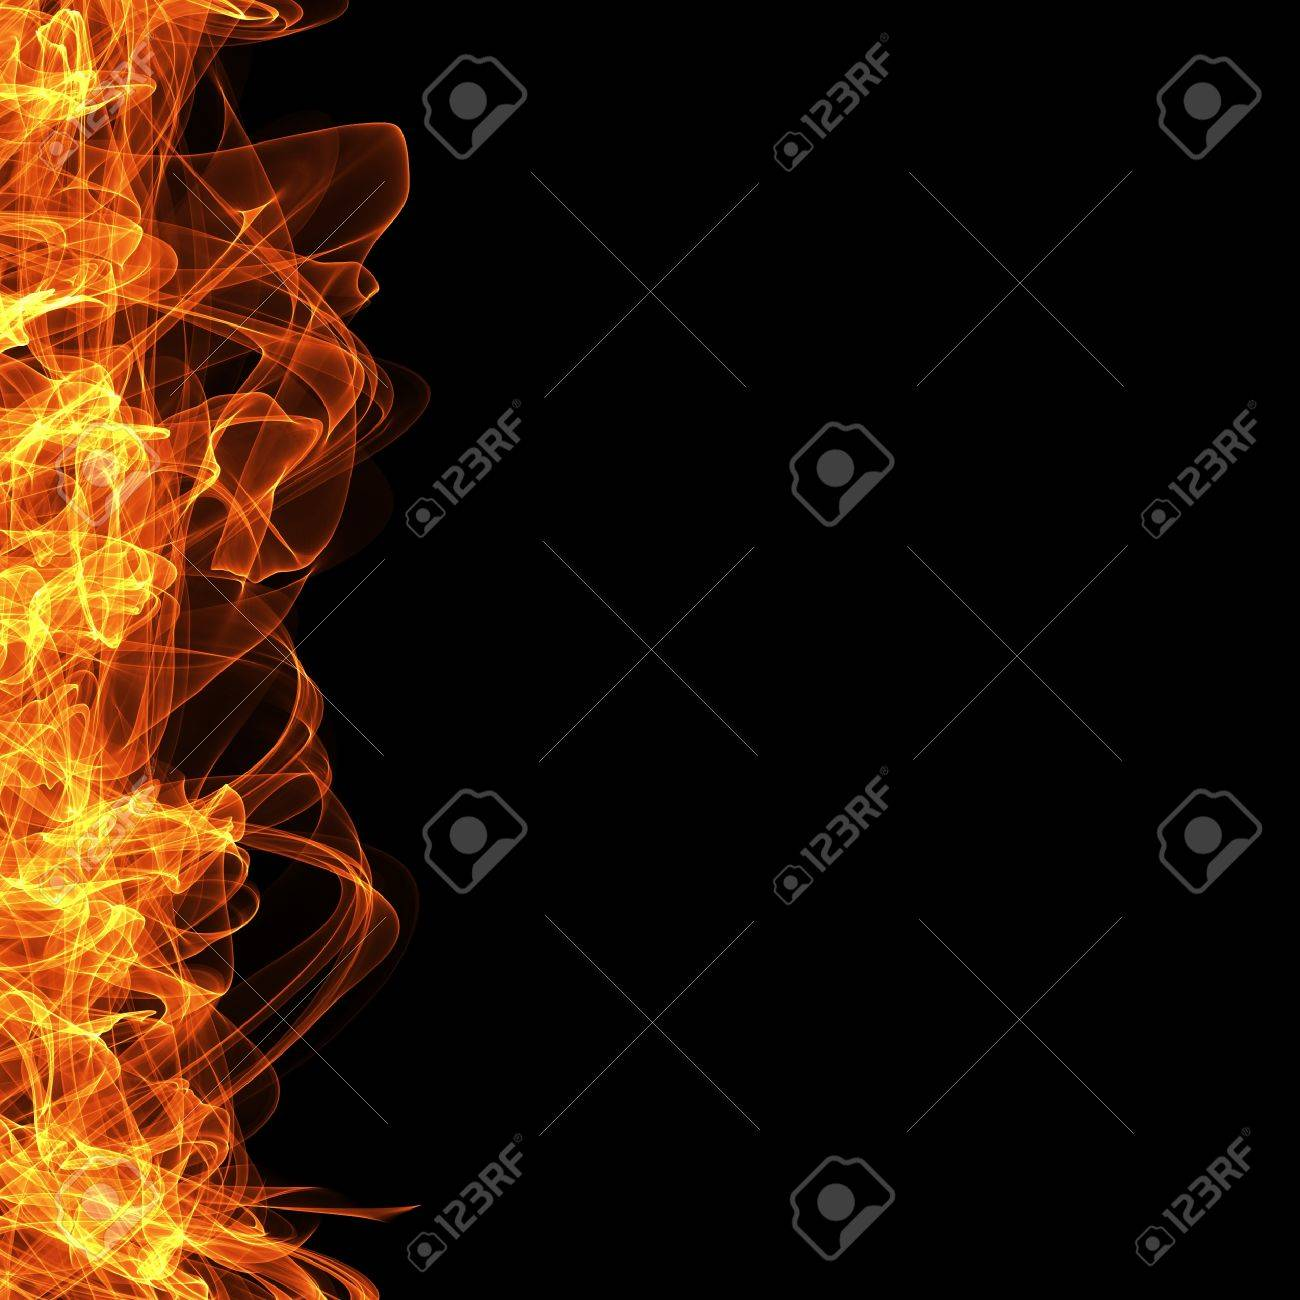 fire frame black background template for website computer graphic